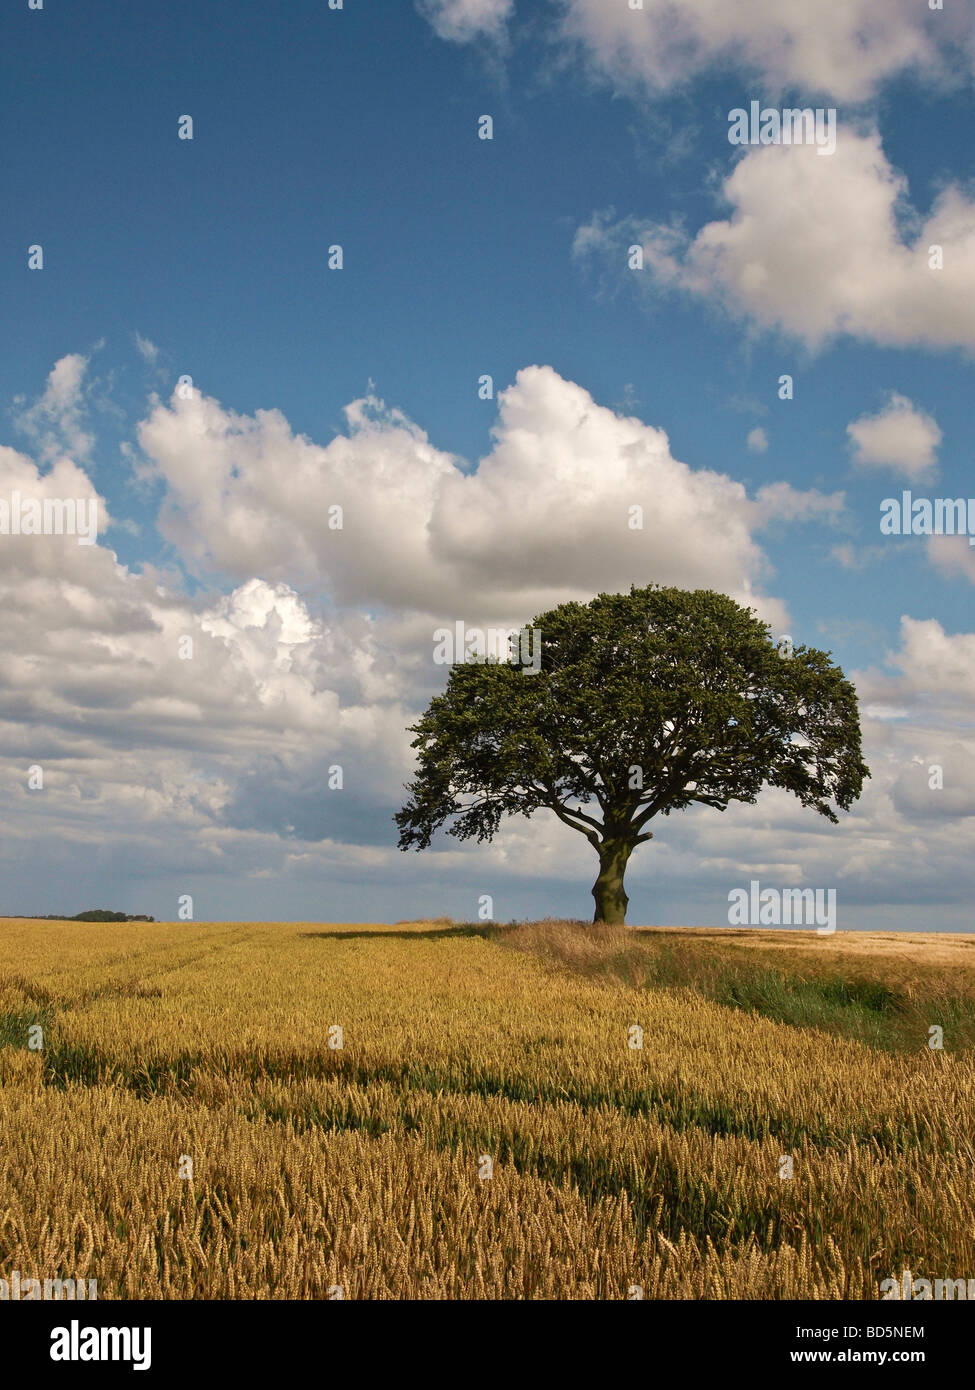 Lone sycamore tree in wheat field on Yorkshire Wolds UK - Stock Image